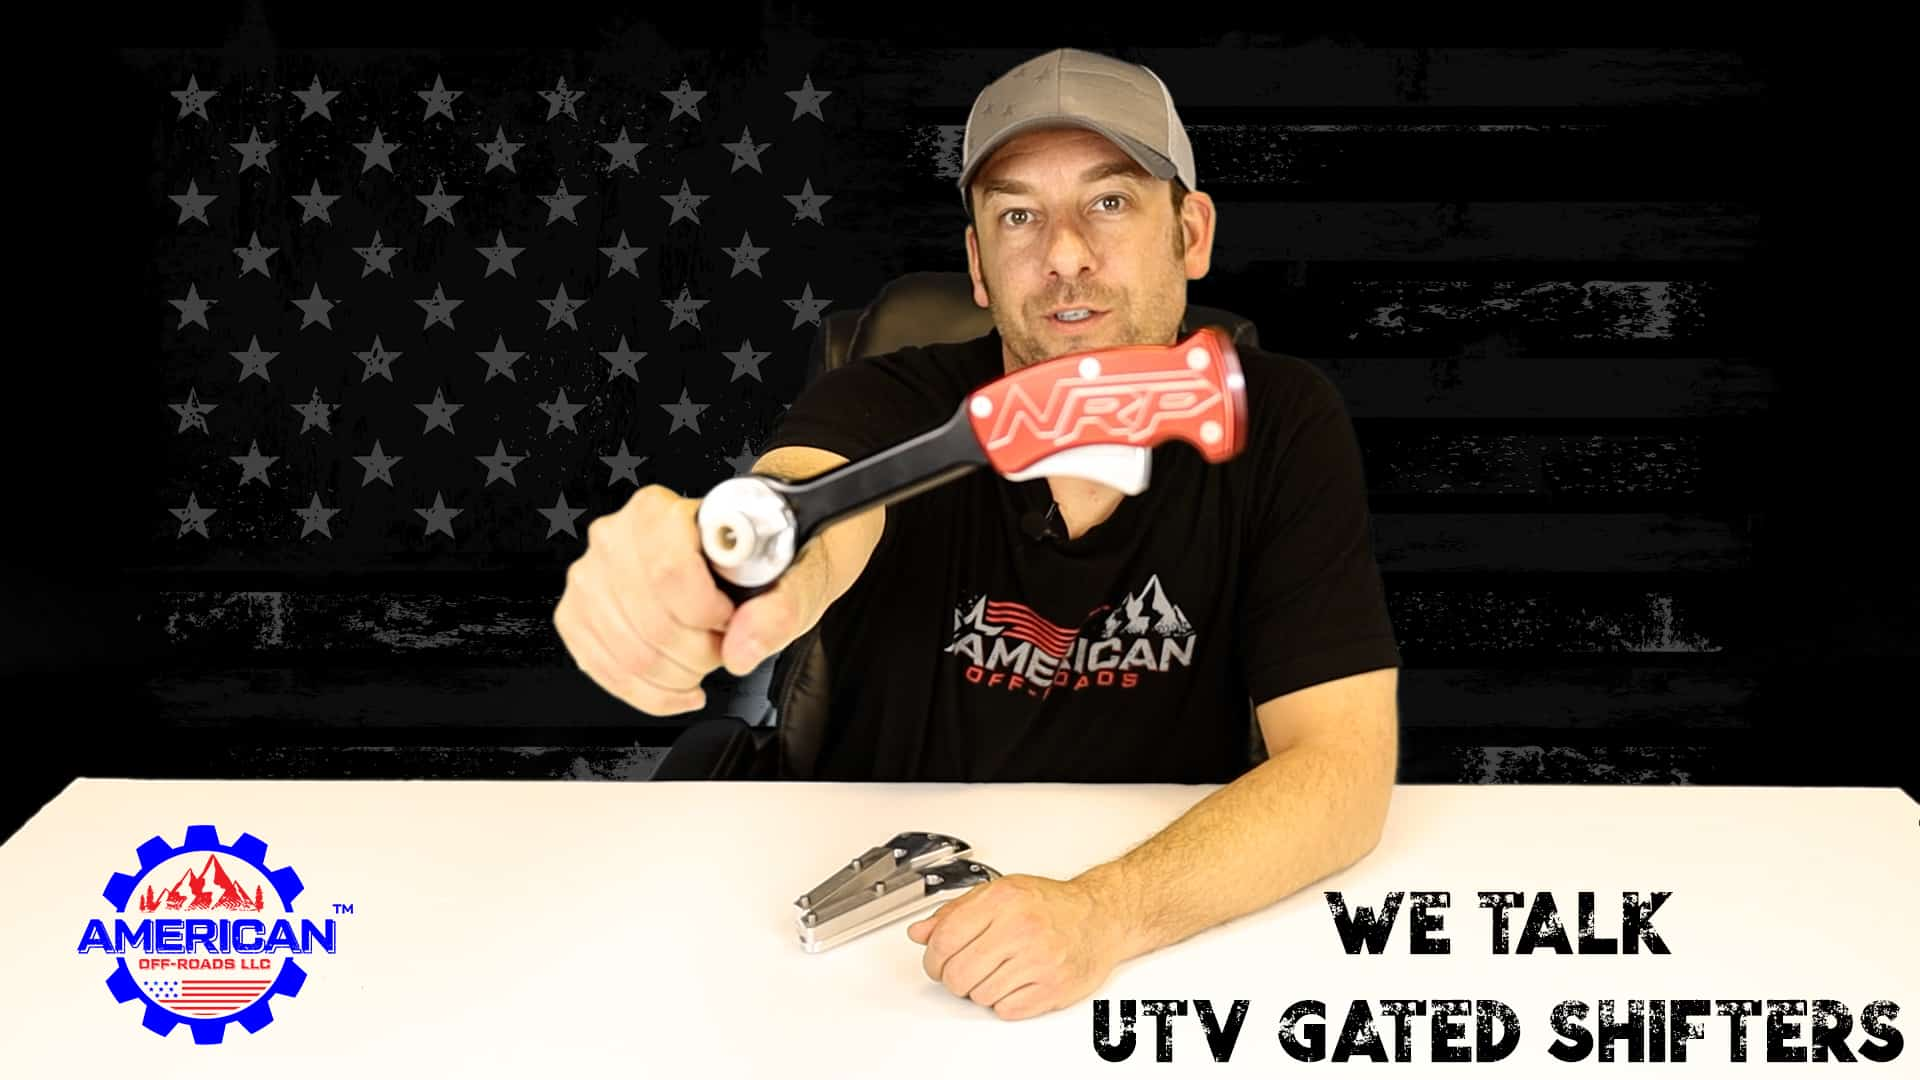 American Off-Roads Talks UTV Gated Shifters, and More